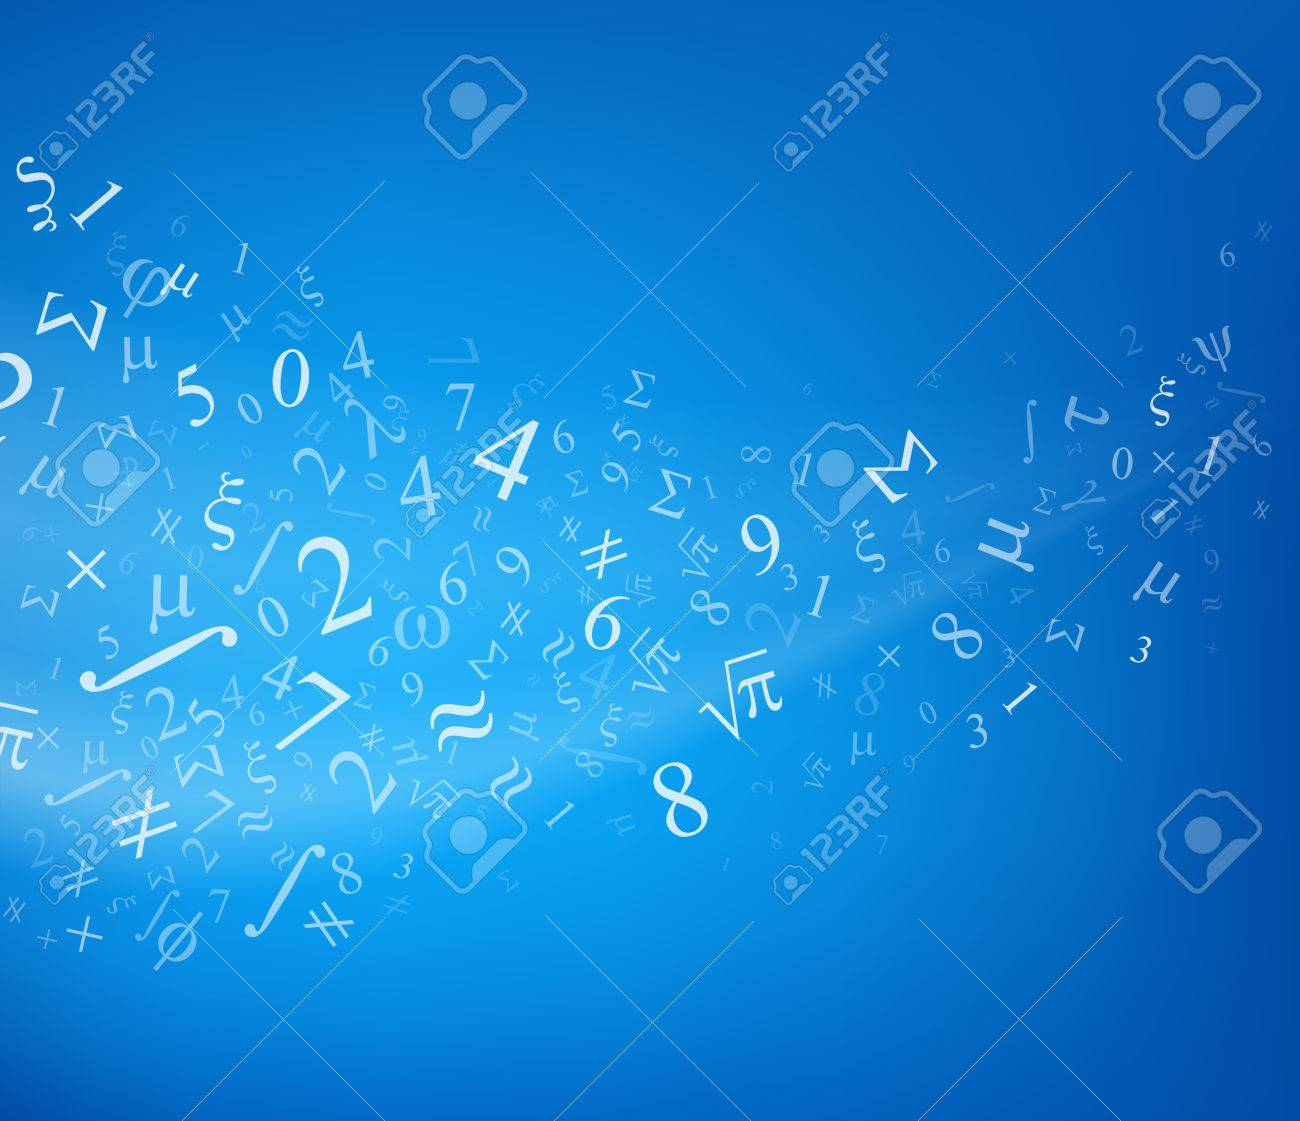 Blue background with numbers, vector illustration. Stock Vector - 29466138